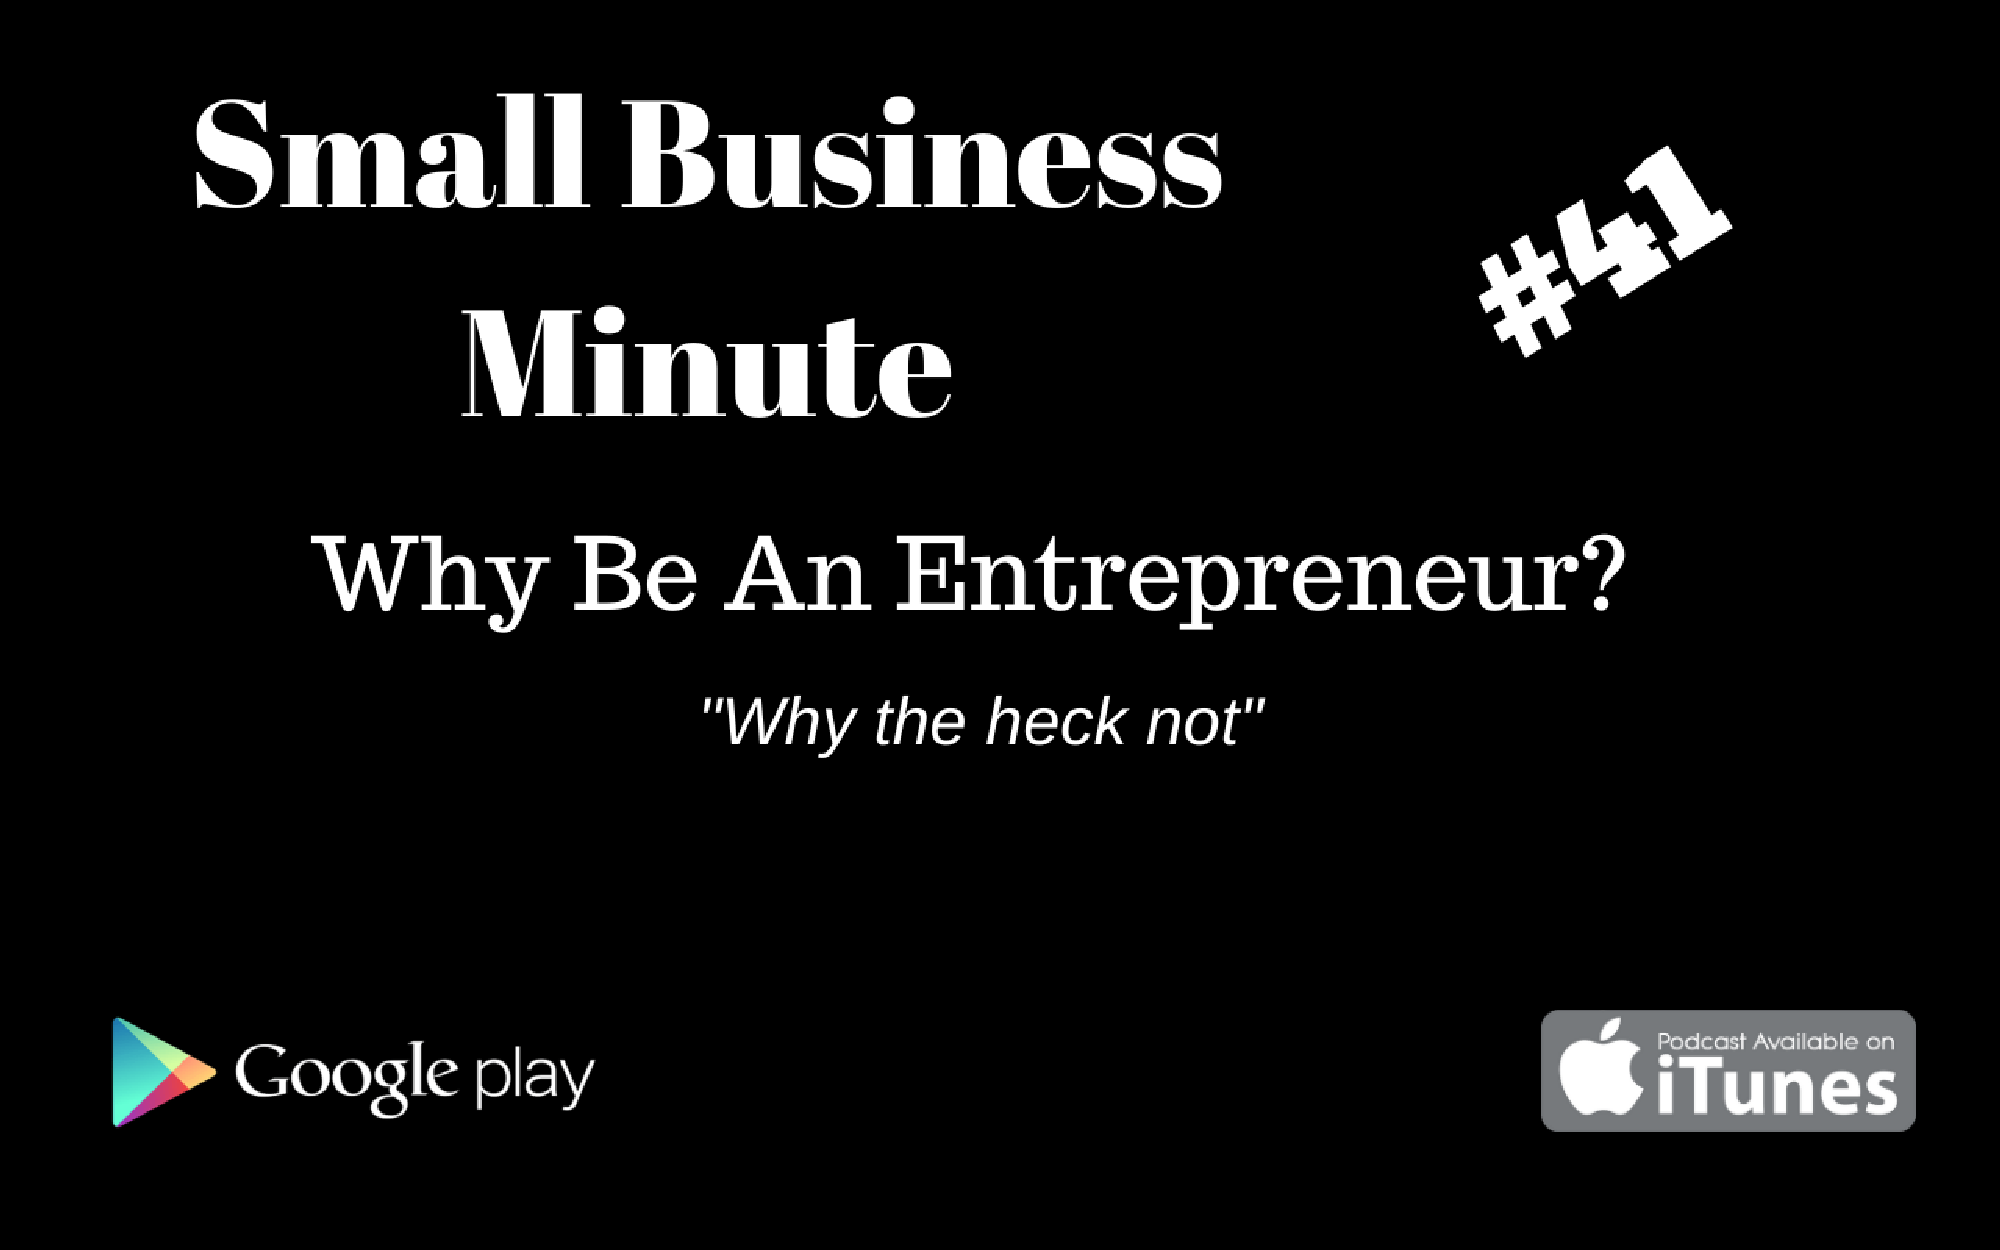 Small Business Minute #41 Why Be An Entrepreneur